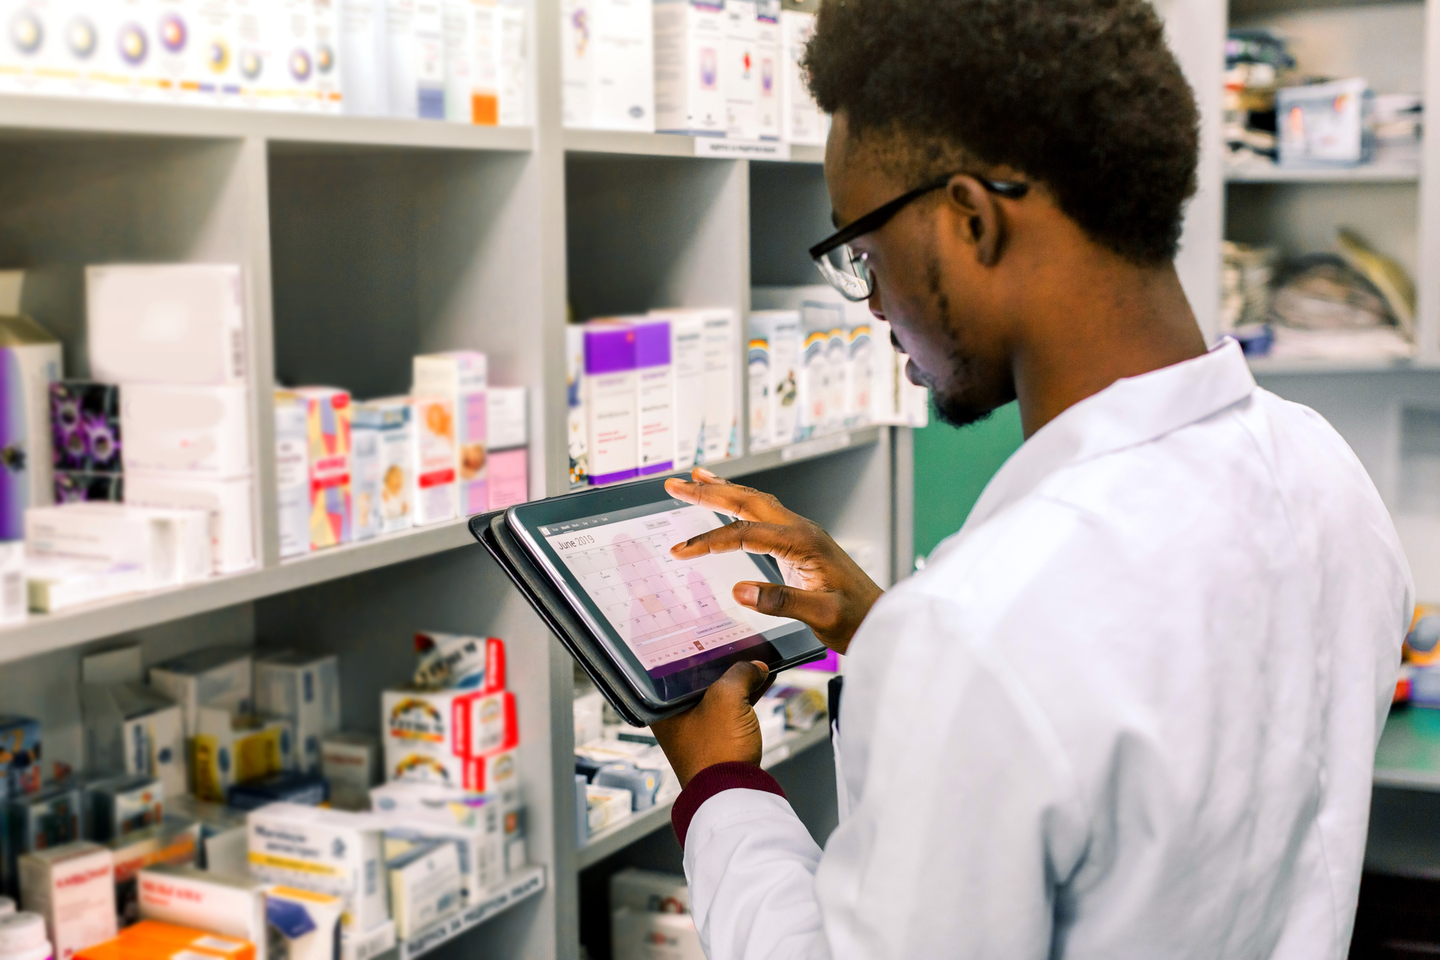 The ability to accurately track pharmaceutical products as they travel throughout the supply chain assures authenticity and prevents acceptance of altered or counterfeit products, helping safeguard patients from dire consequences.